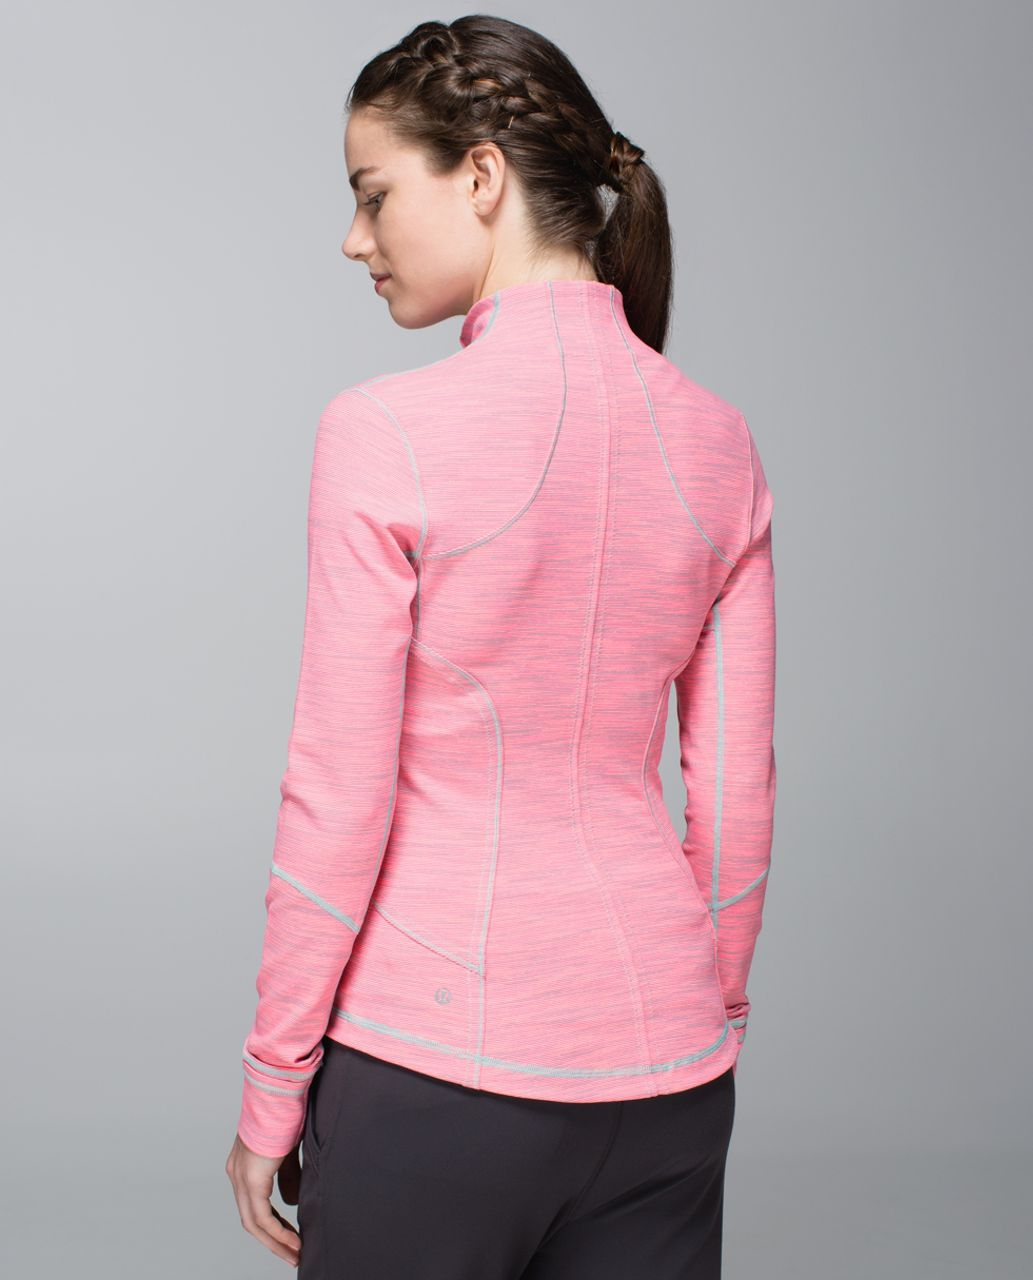 Lululemon Forme Jacket *Cuffins - Wee Are From Space Neon Pink Opal / Angel Wing